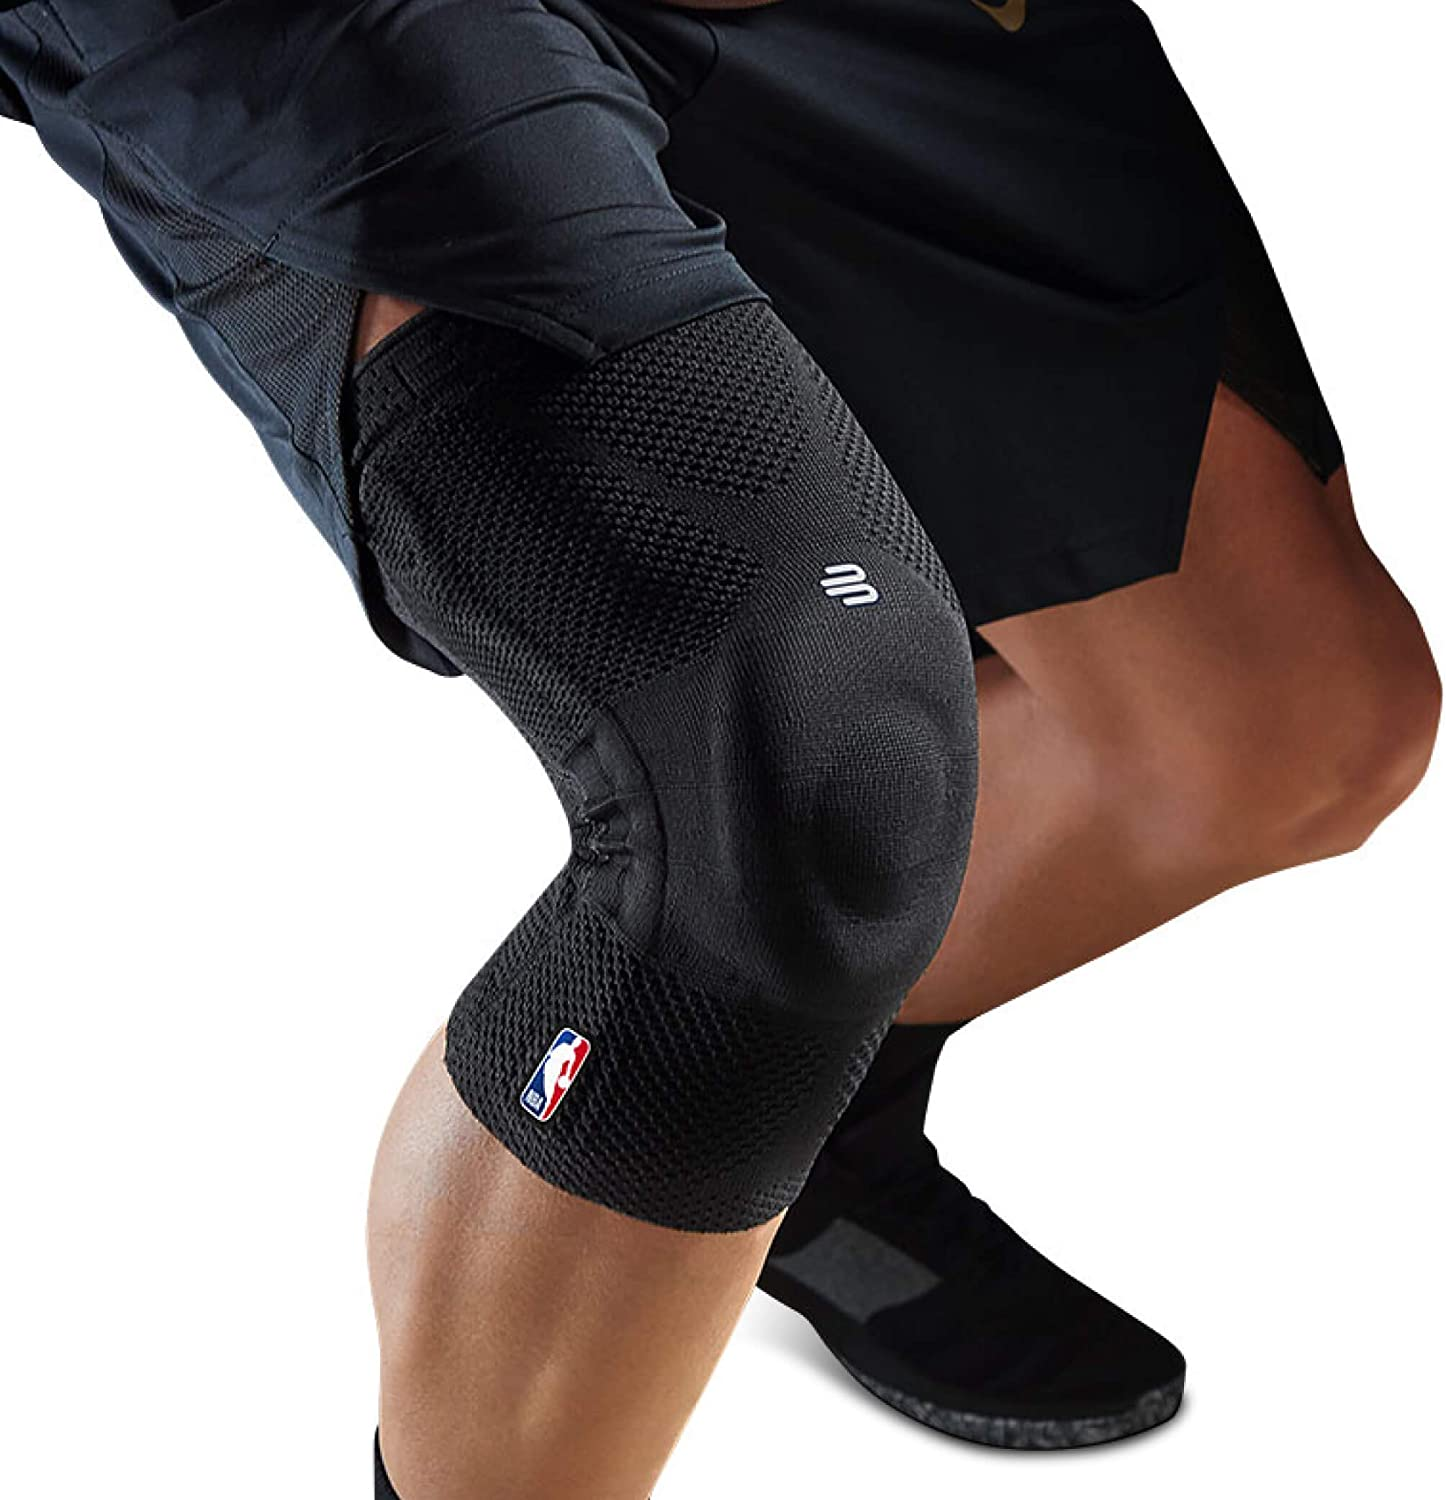 Bauerfeind GenuTrain NBA Knee Brace - Basketball Support with Medical Compression - Sleeve Design with Patella Pad Gel Ring for Pain Relief & Stabilization (Black, XS)